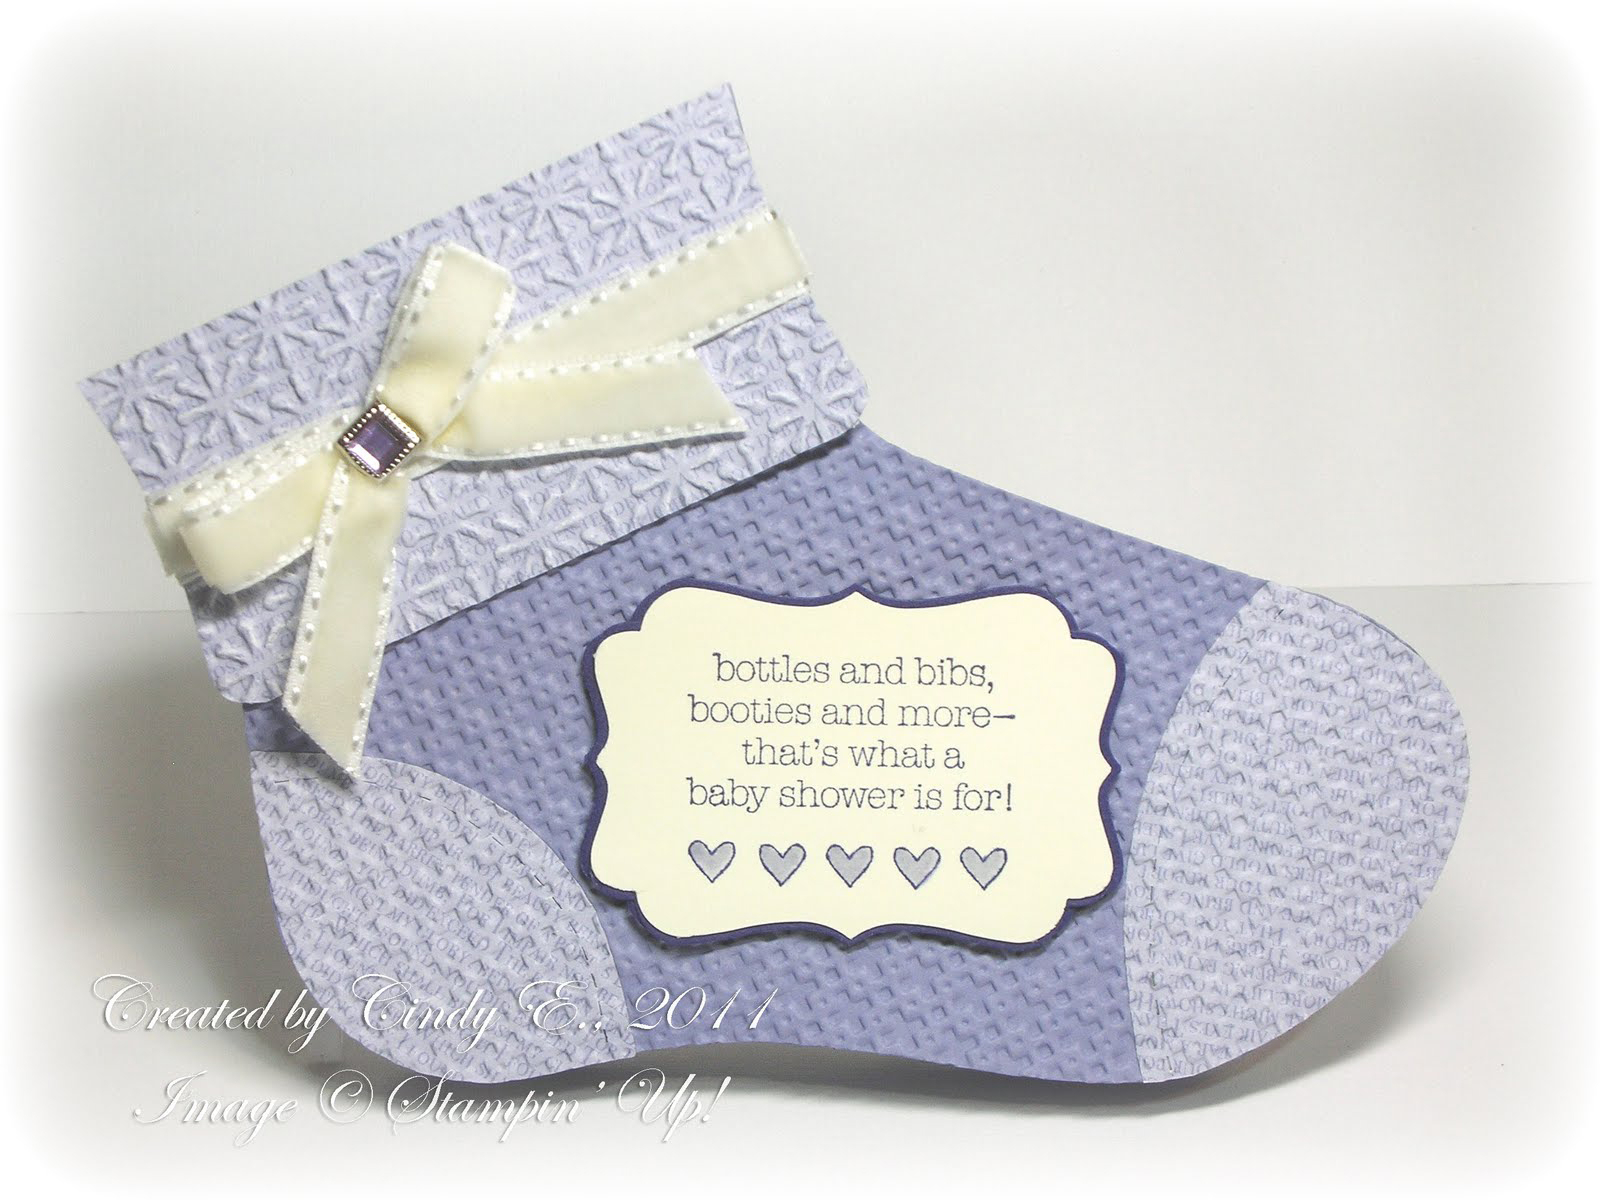 10 Nice Cute Ideas For Baby Shower Invitations unique baby shower invitations from saseso and get inspired to make